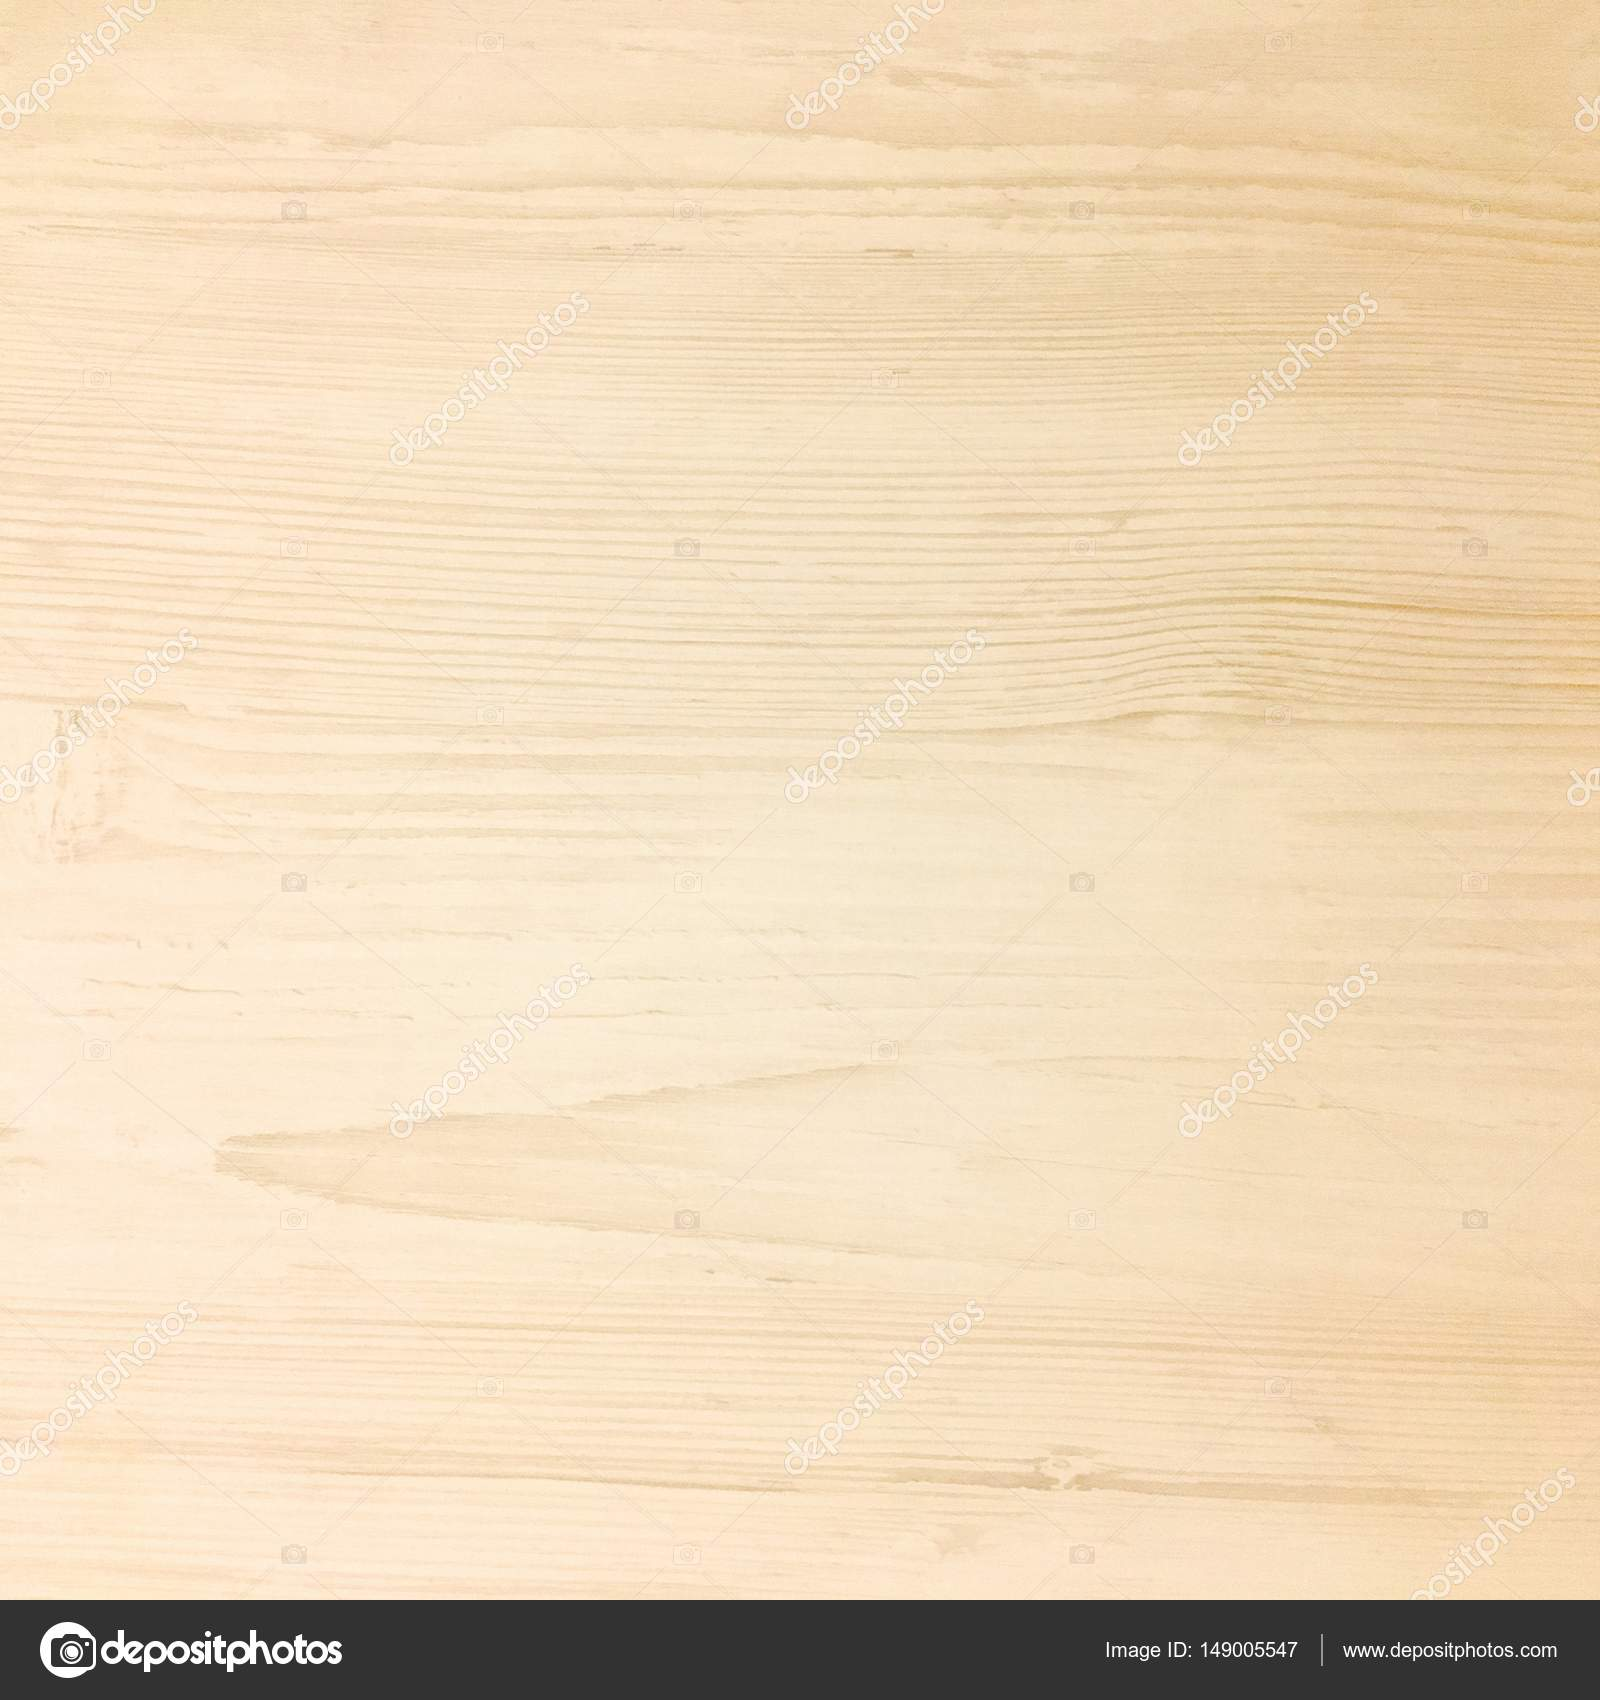 White Wood Texture Light Wooden Background Old Wood